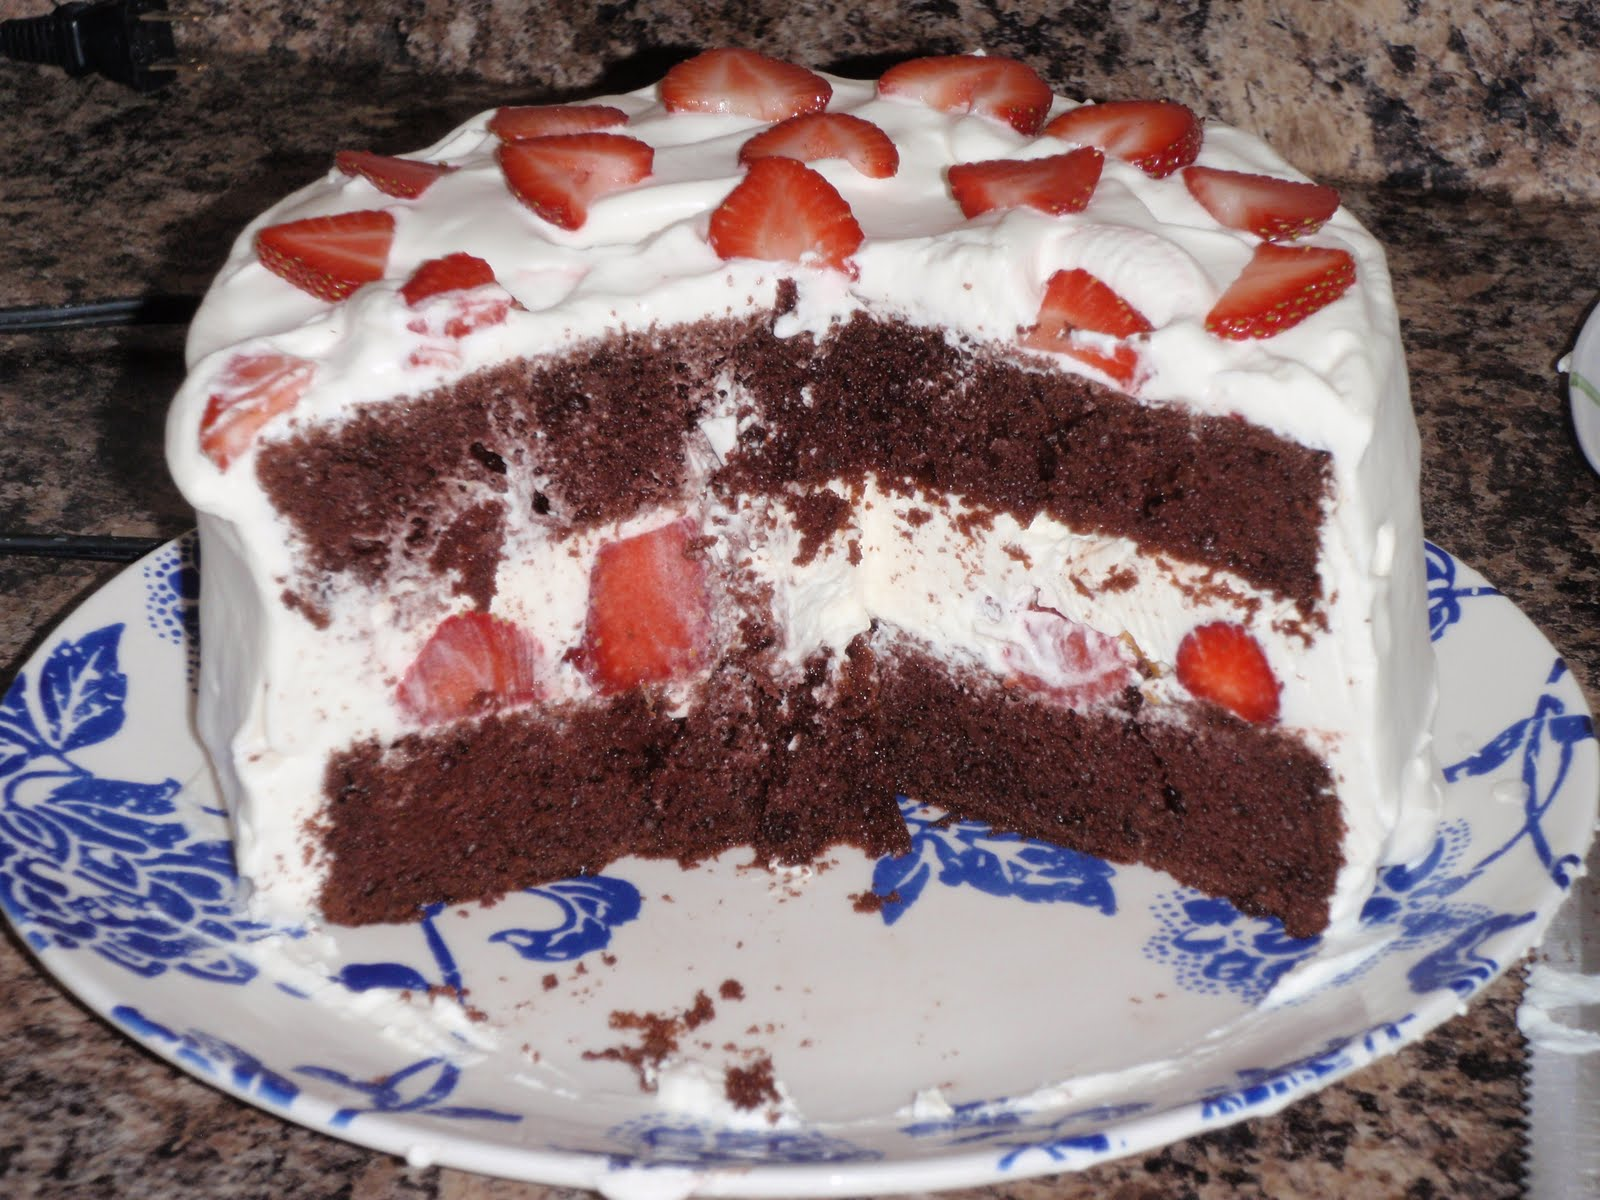 Cobalt Kitchen: Strawberry Whipped Cream Cake